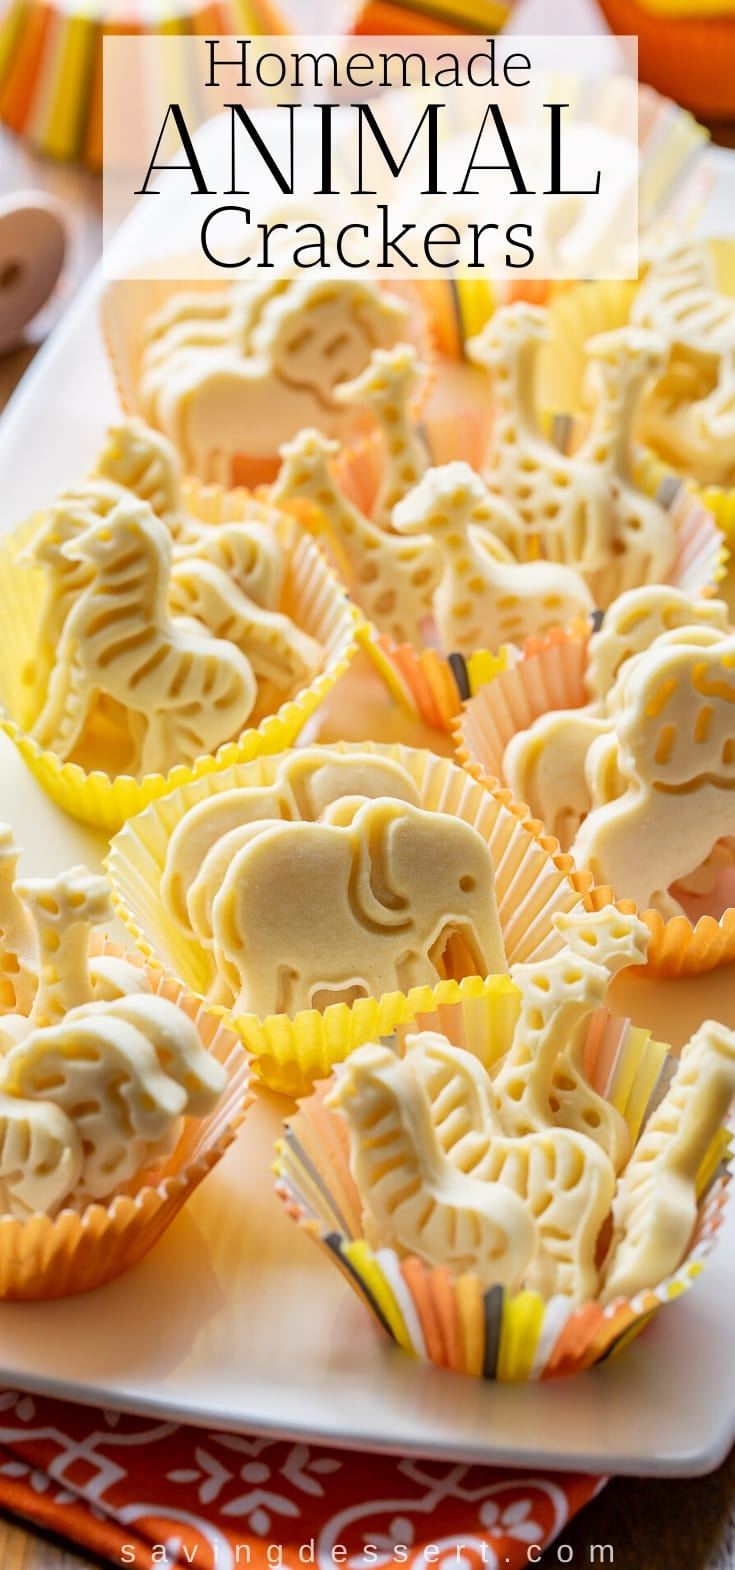 A platter of homemade animal crackers in decorative muffin cups